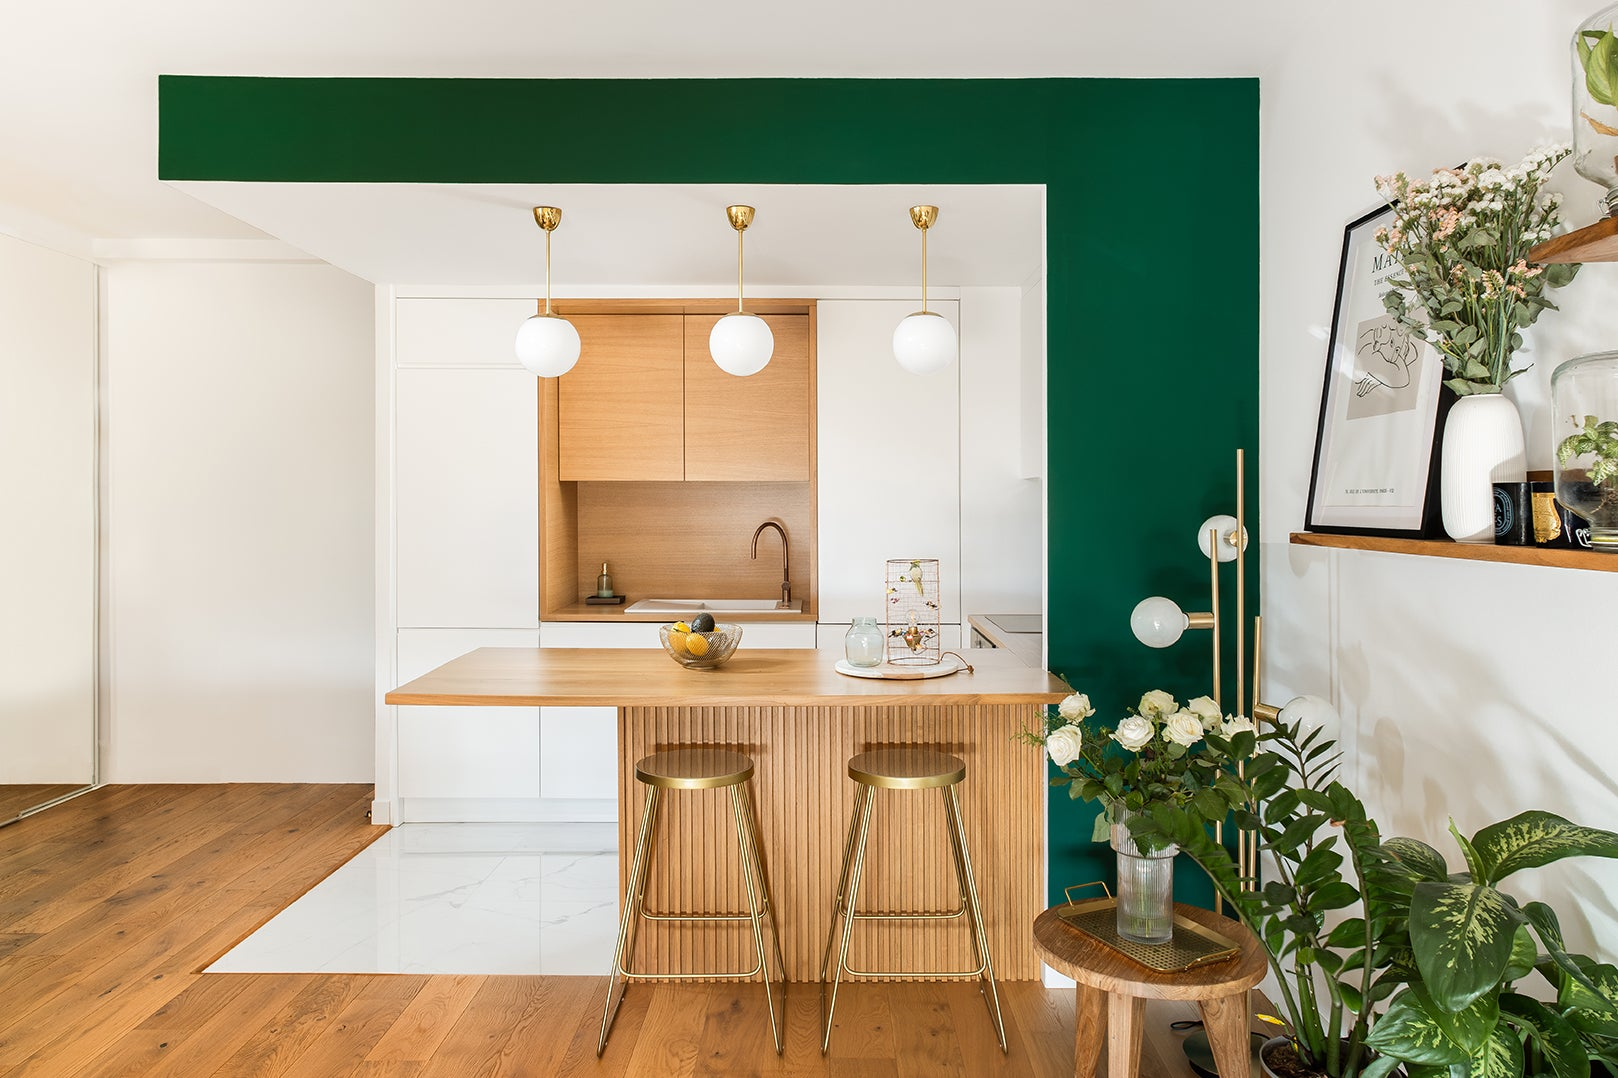 green and white kitchen with bar seating